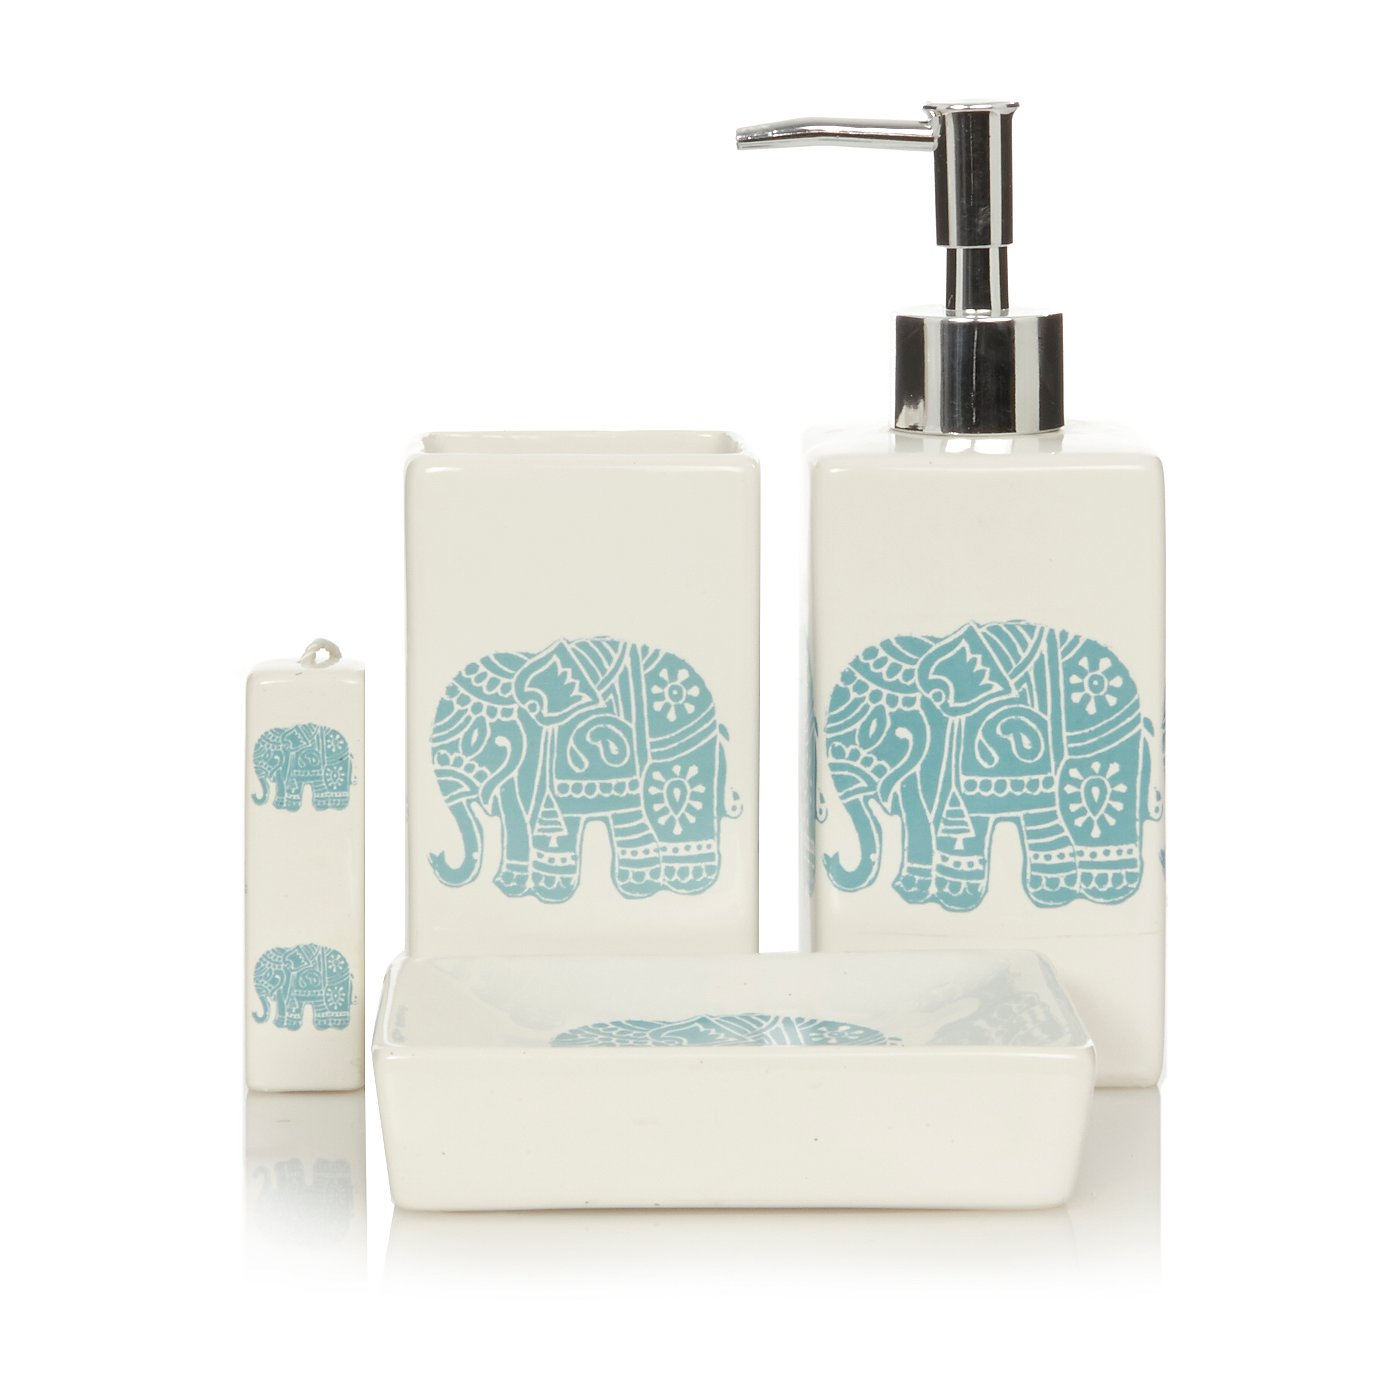 George Home Elephants Bathroom Accessories. Loading zoom